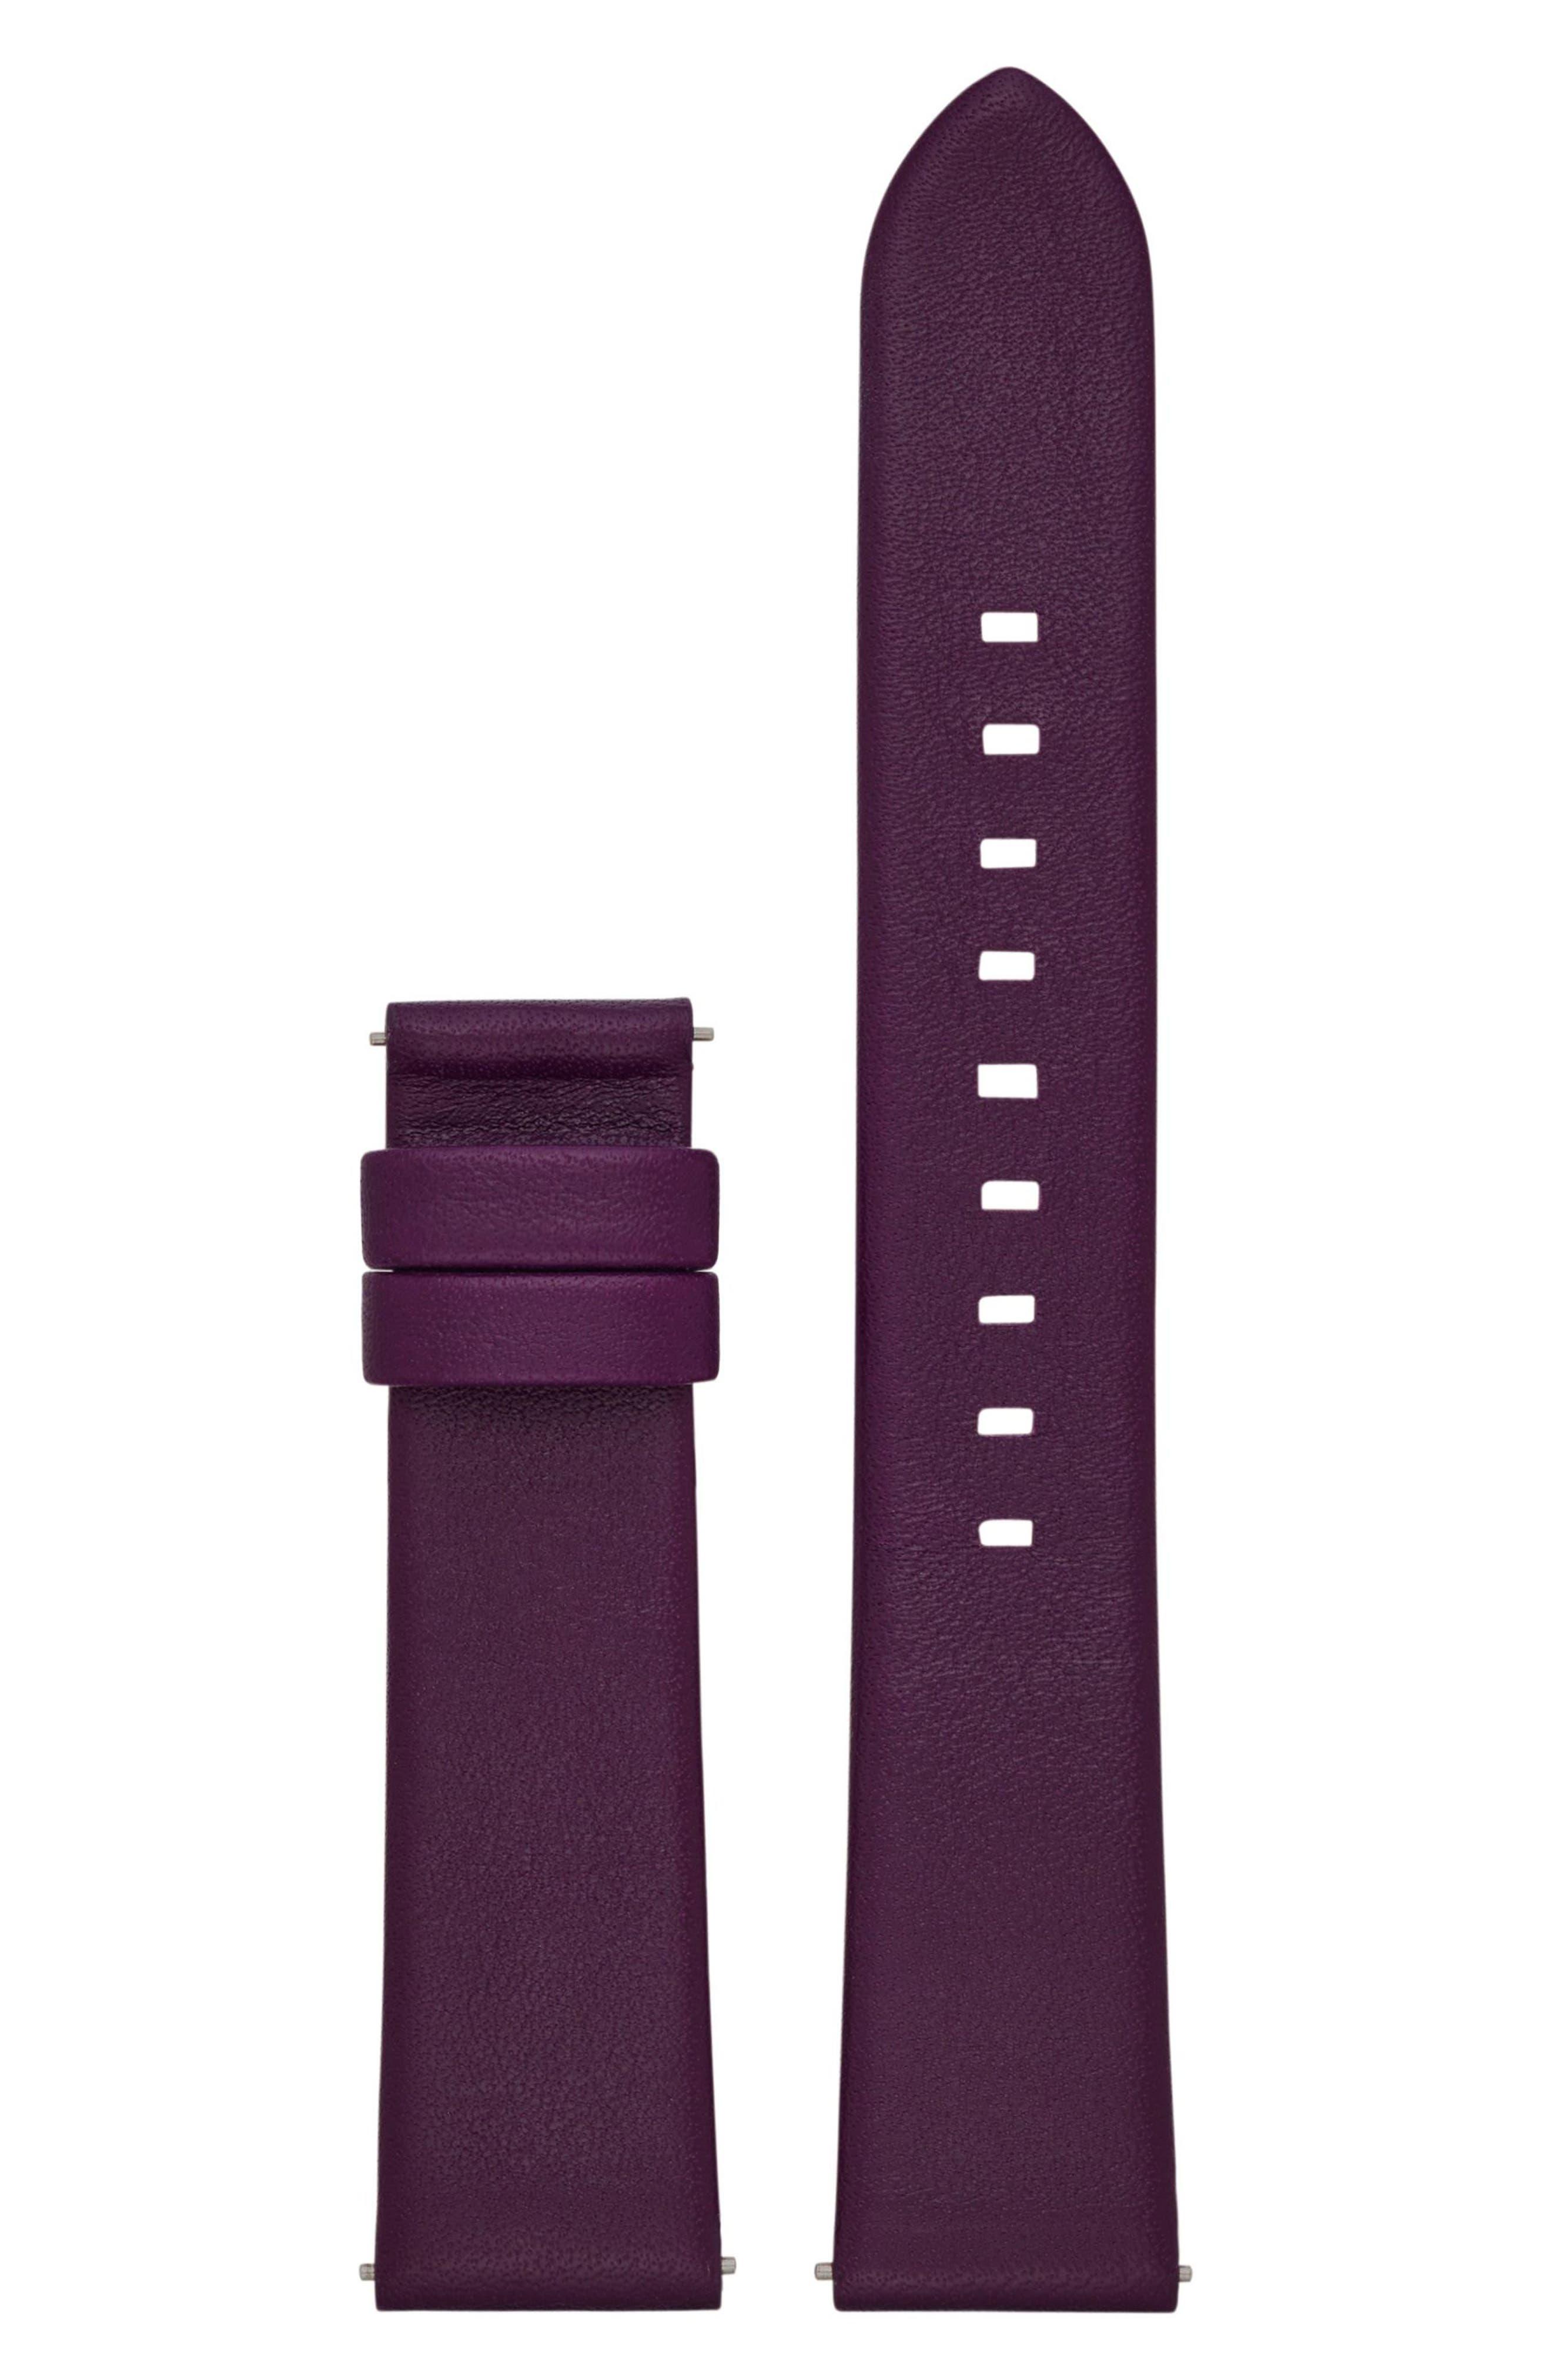 Sofie 18mm Leather Watch Strap,                         Main,                         color, Plum